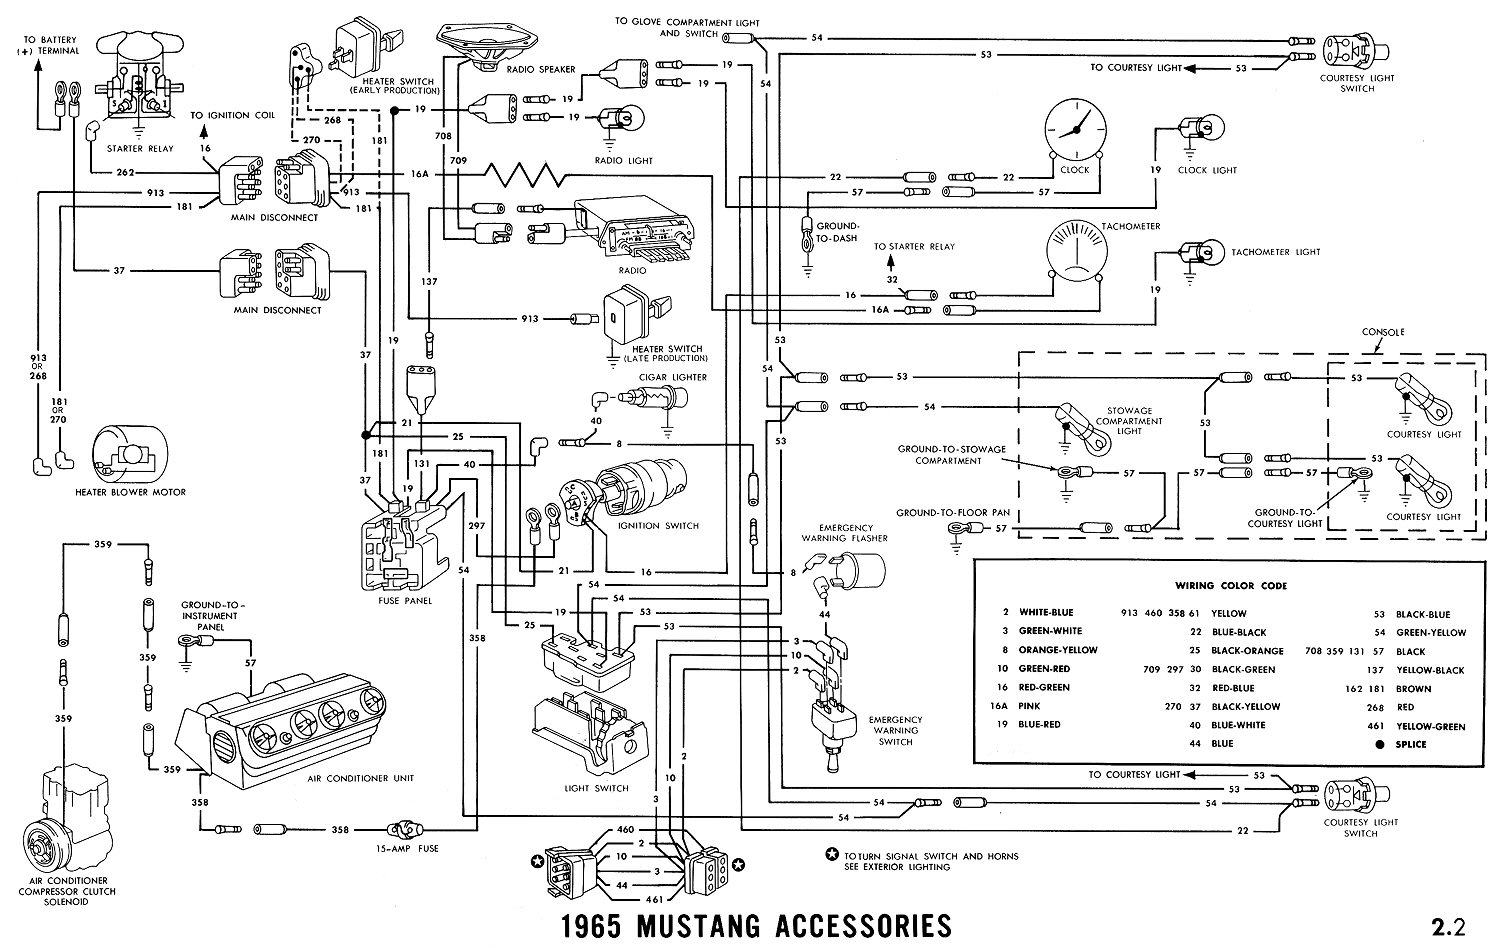 Mustang Wiring Harness 65 66 Diagram 1966 Gmc Dash 70 Simple Diagram65 Diagrams Click